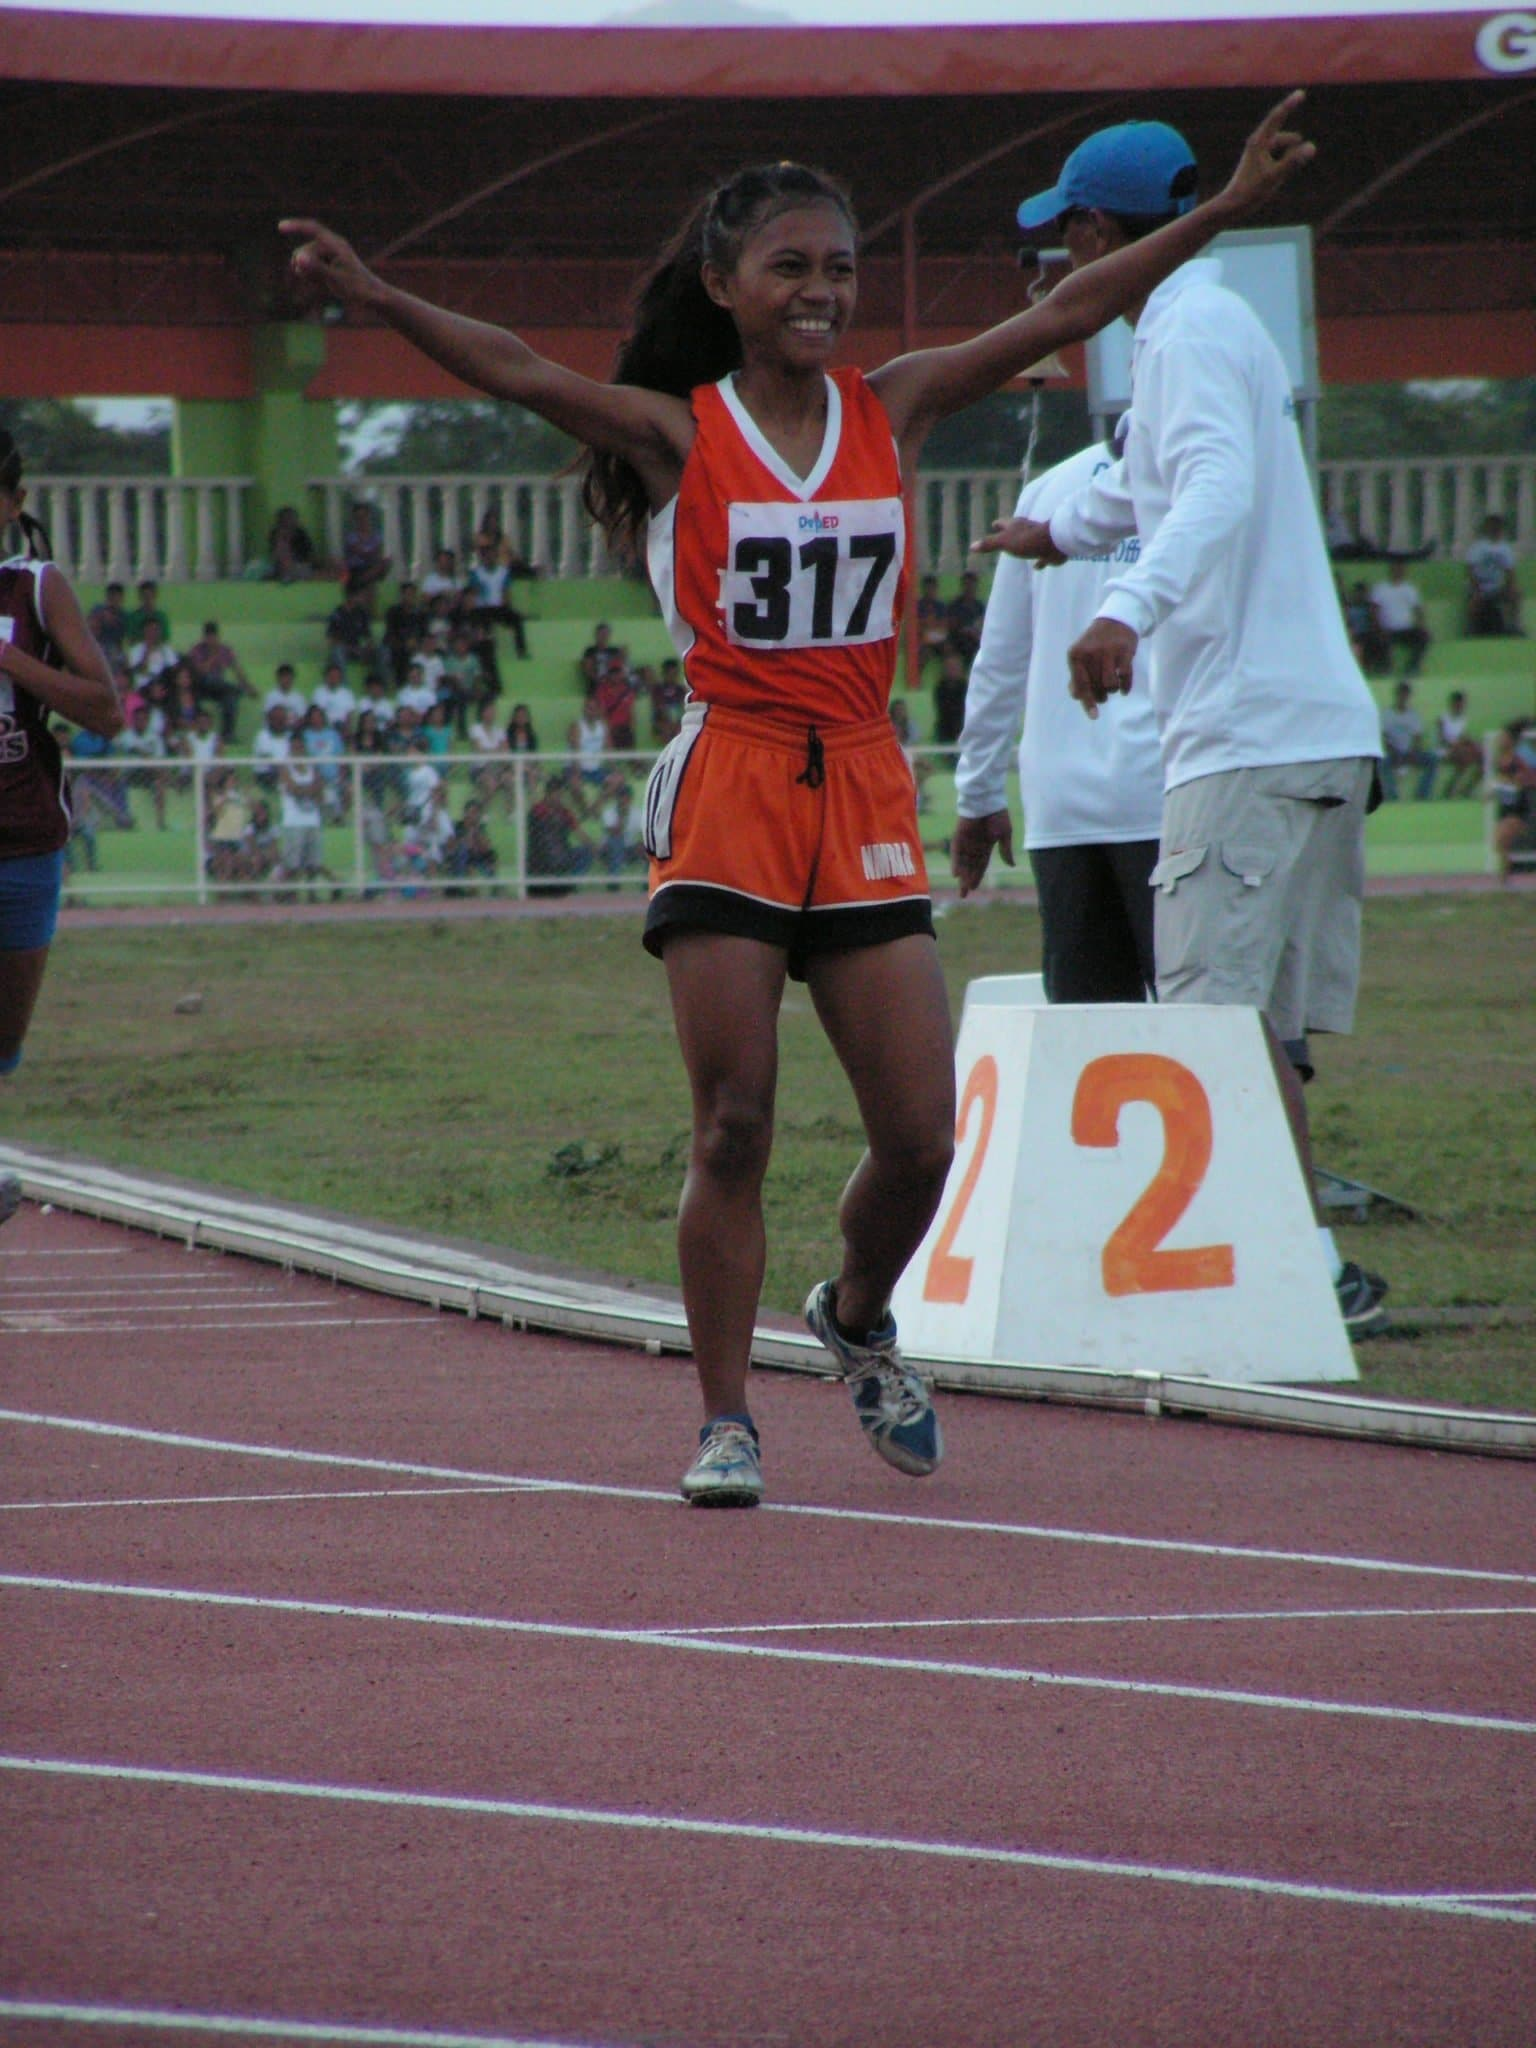 Geanne Calis celebrating after her strong finish.